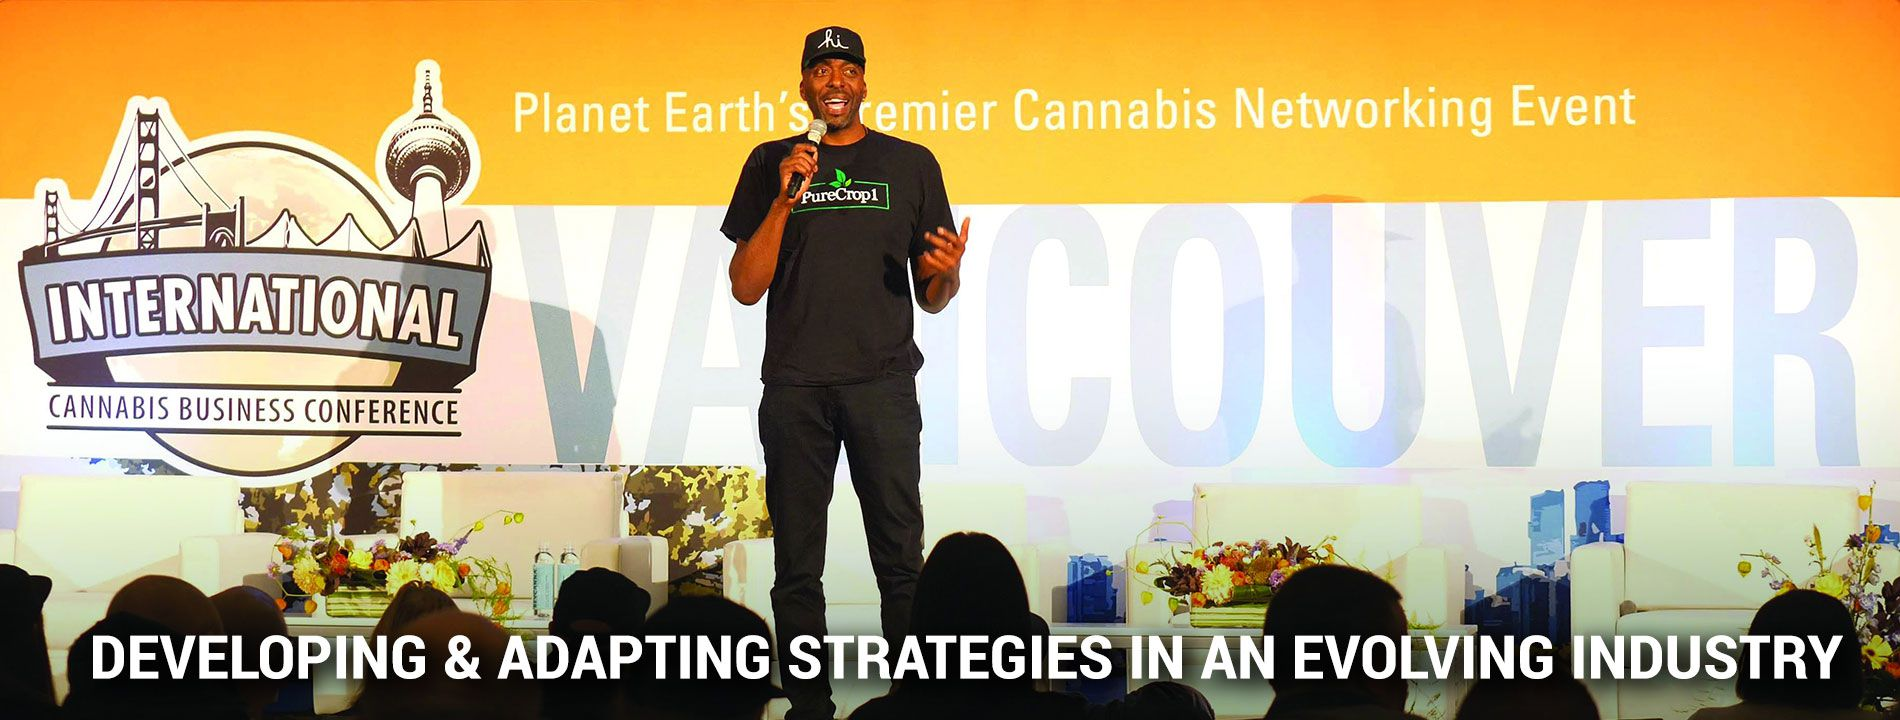 John Salley at the Virtual International Cannabis Business Conference audience